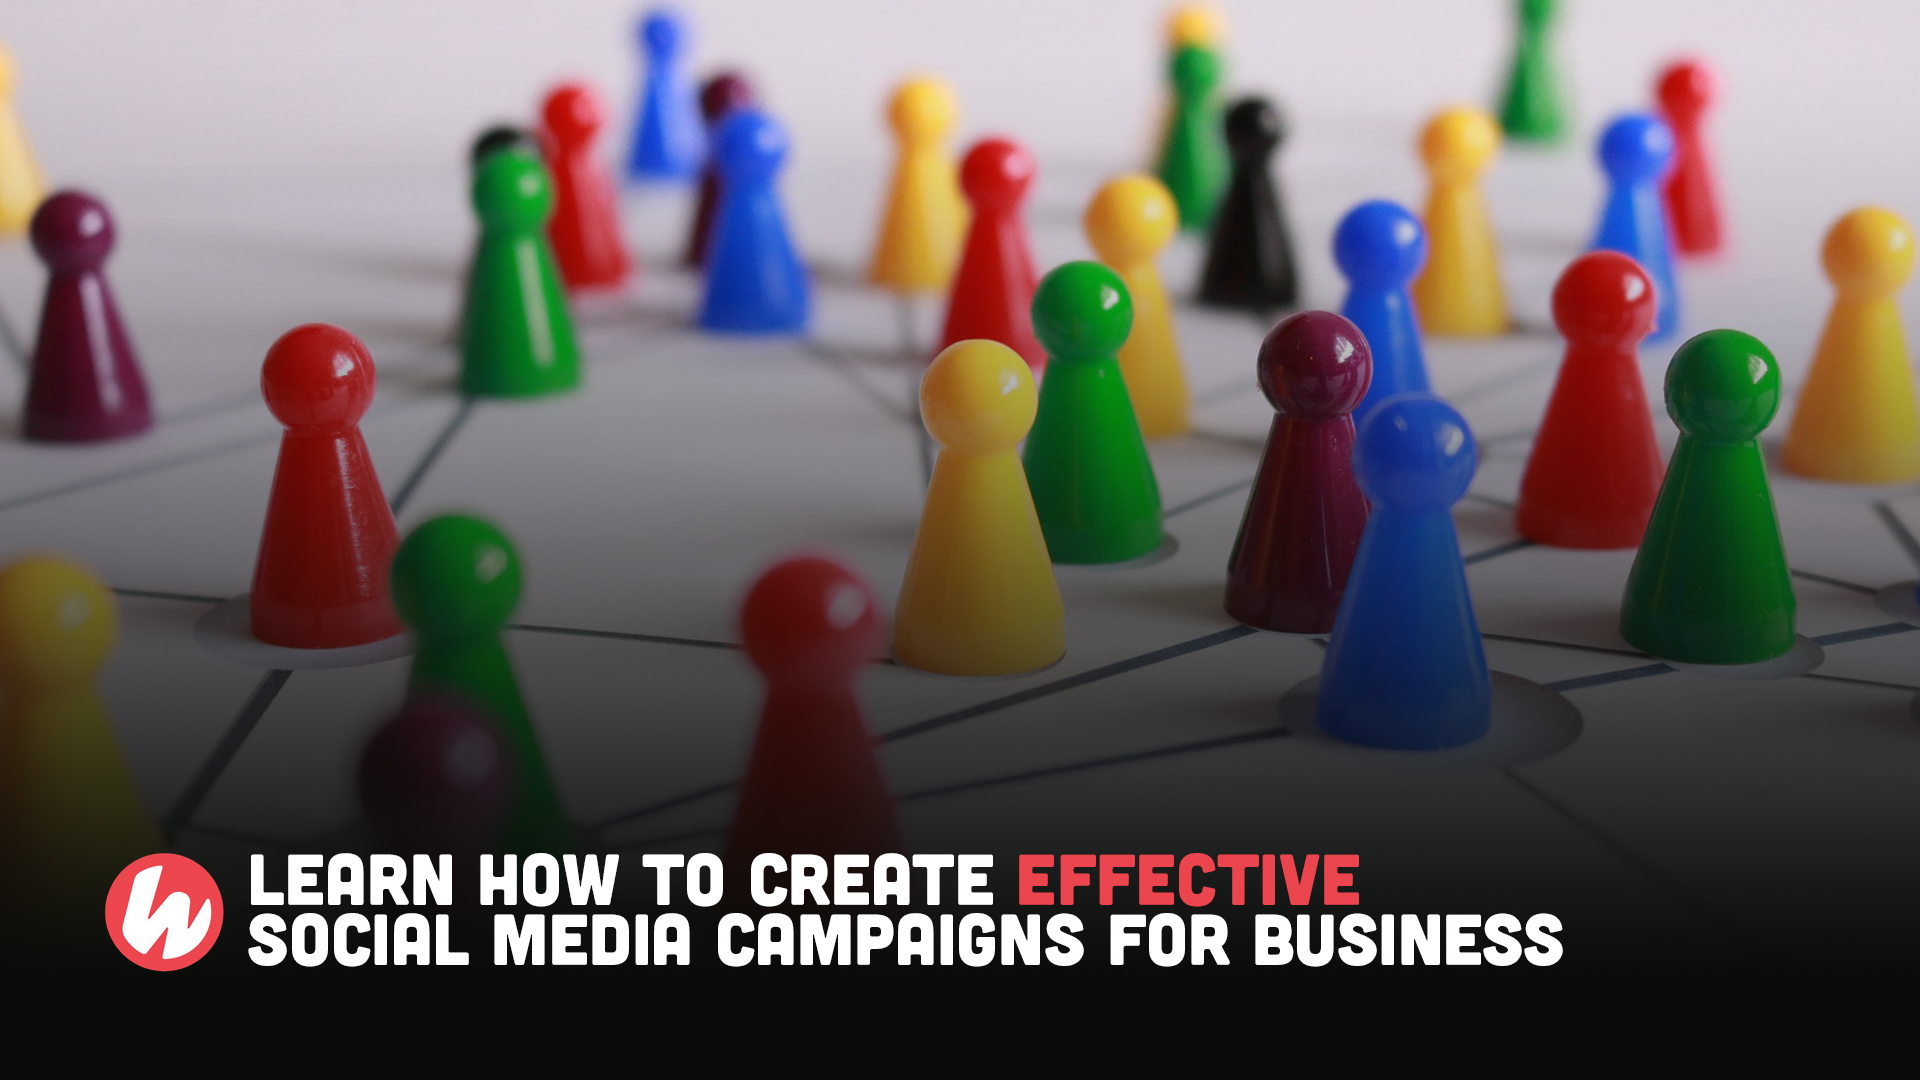 Learn how to create effective social media campaigns for business